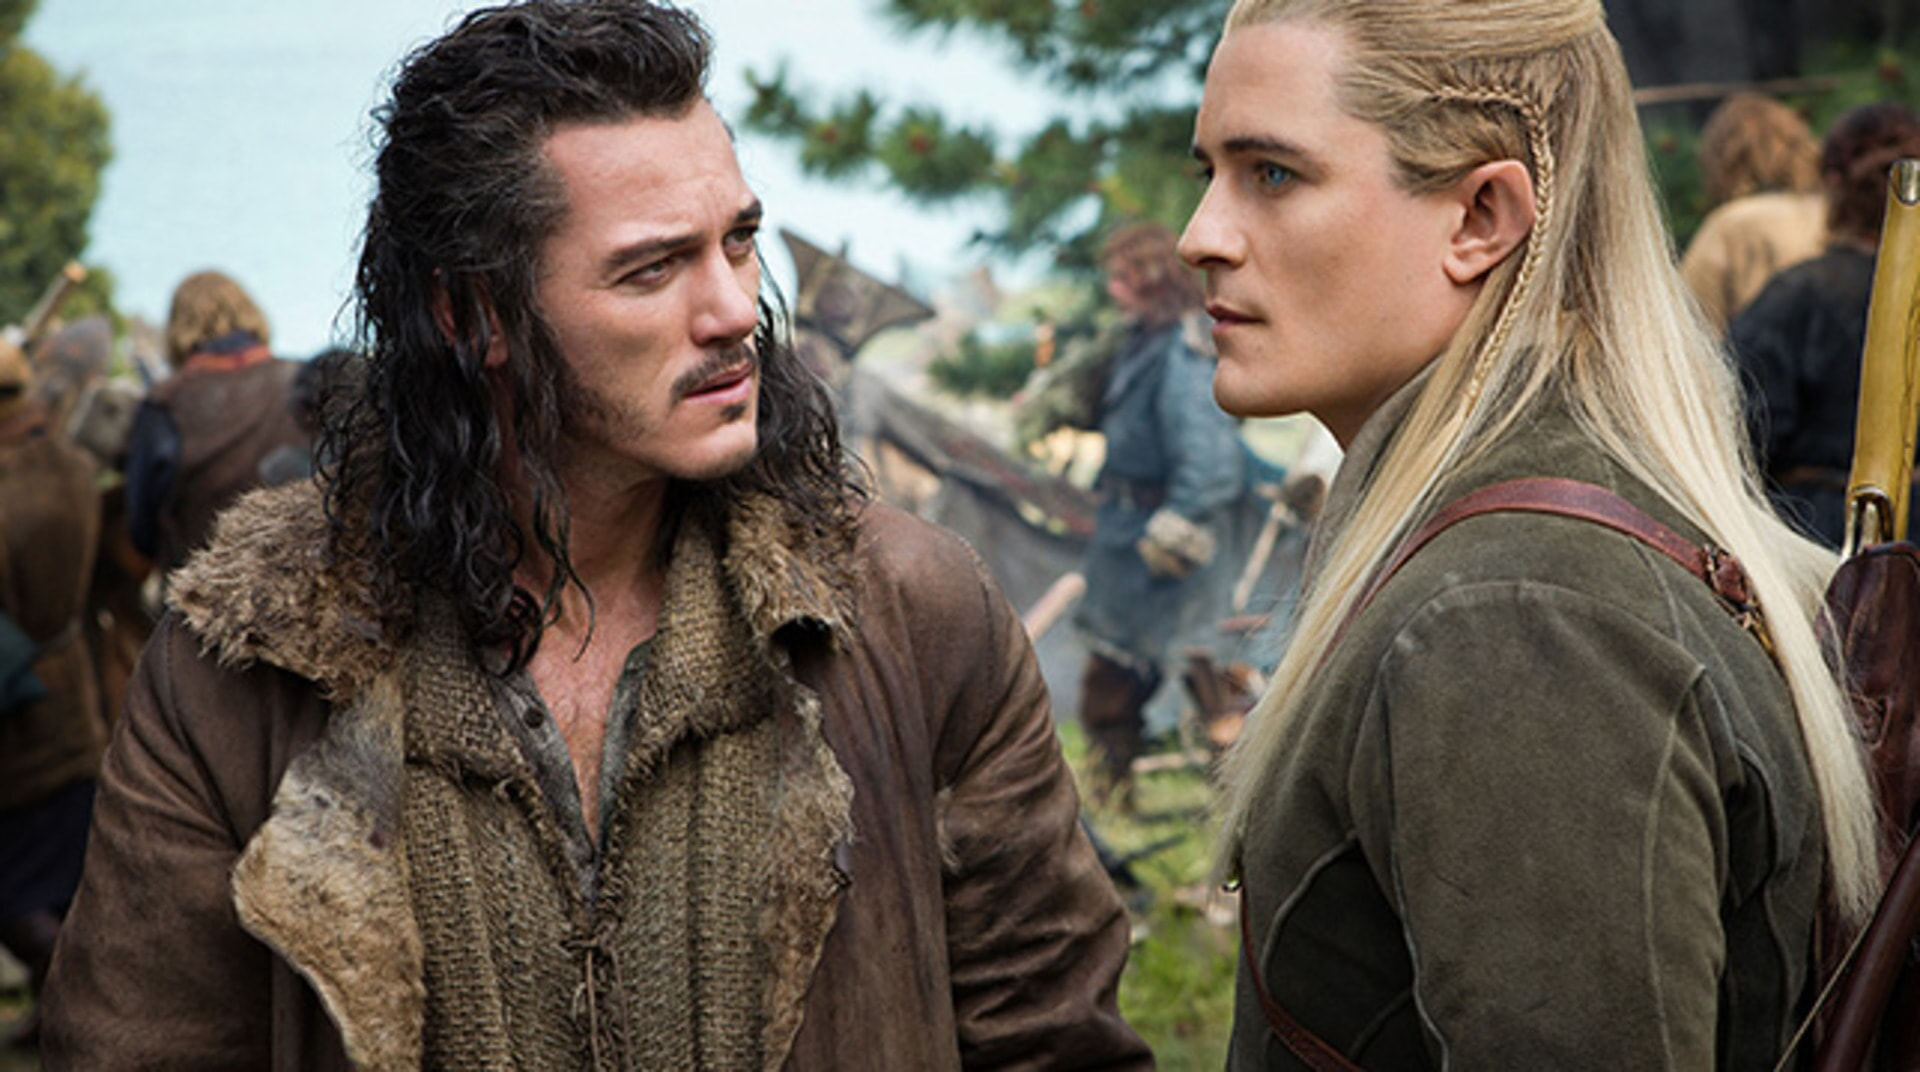 The Hobbit: The Battle of the Five Armies - Image 5